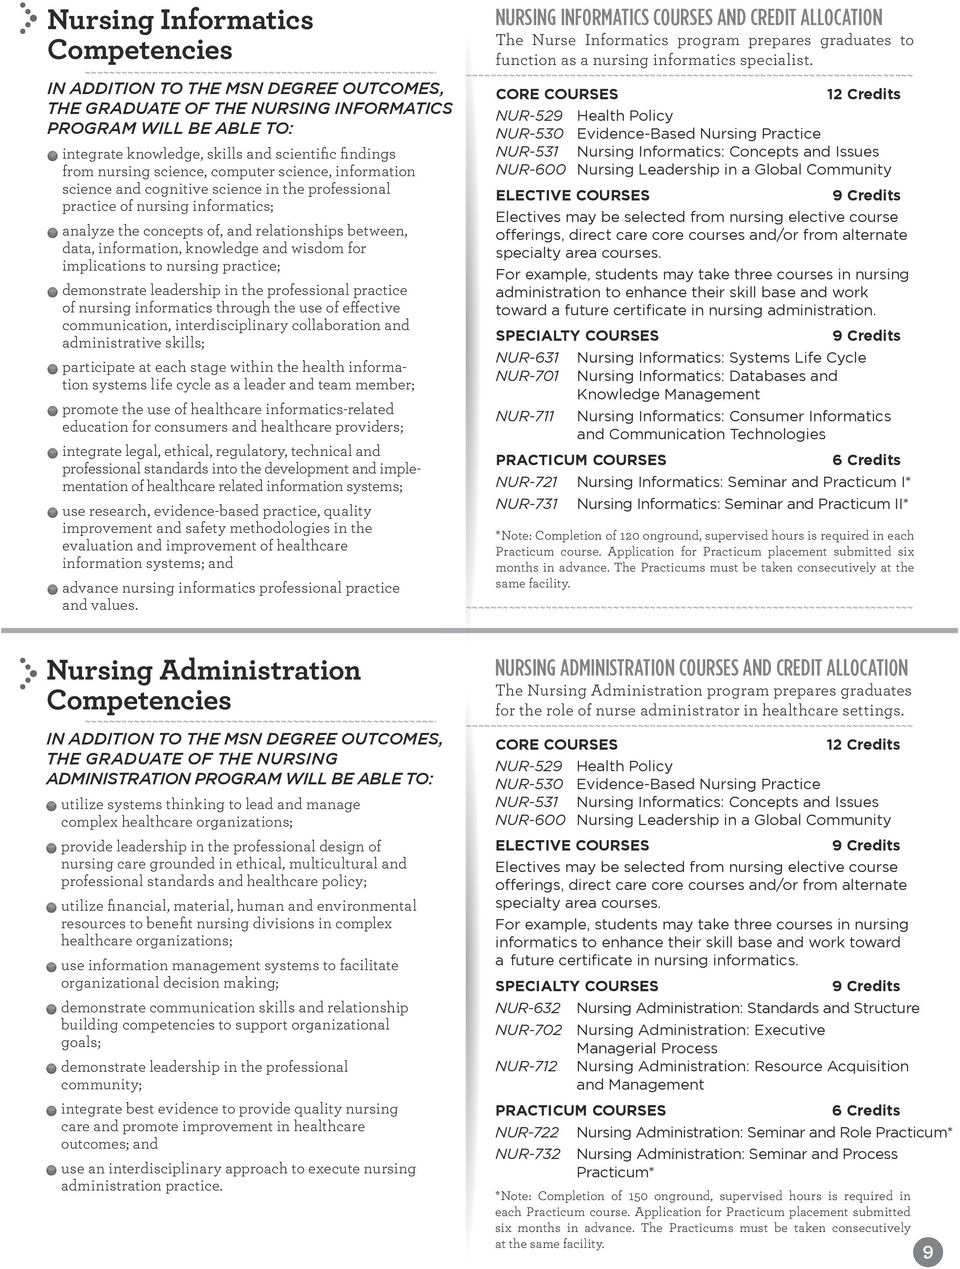 integrate knowledge, skills and scientific findings NUR-531 Nursing Informatics: Concepts and Issues from nursing science, computer science, information NUR-600 Nursing Leadership in a Global